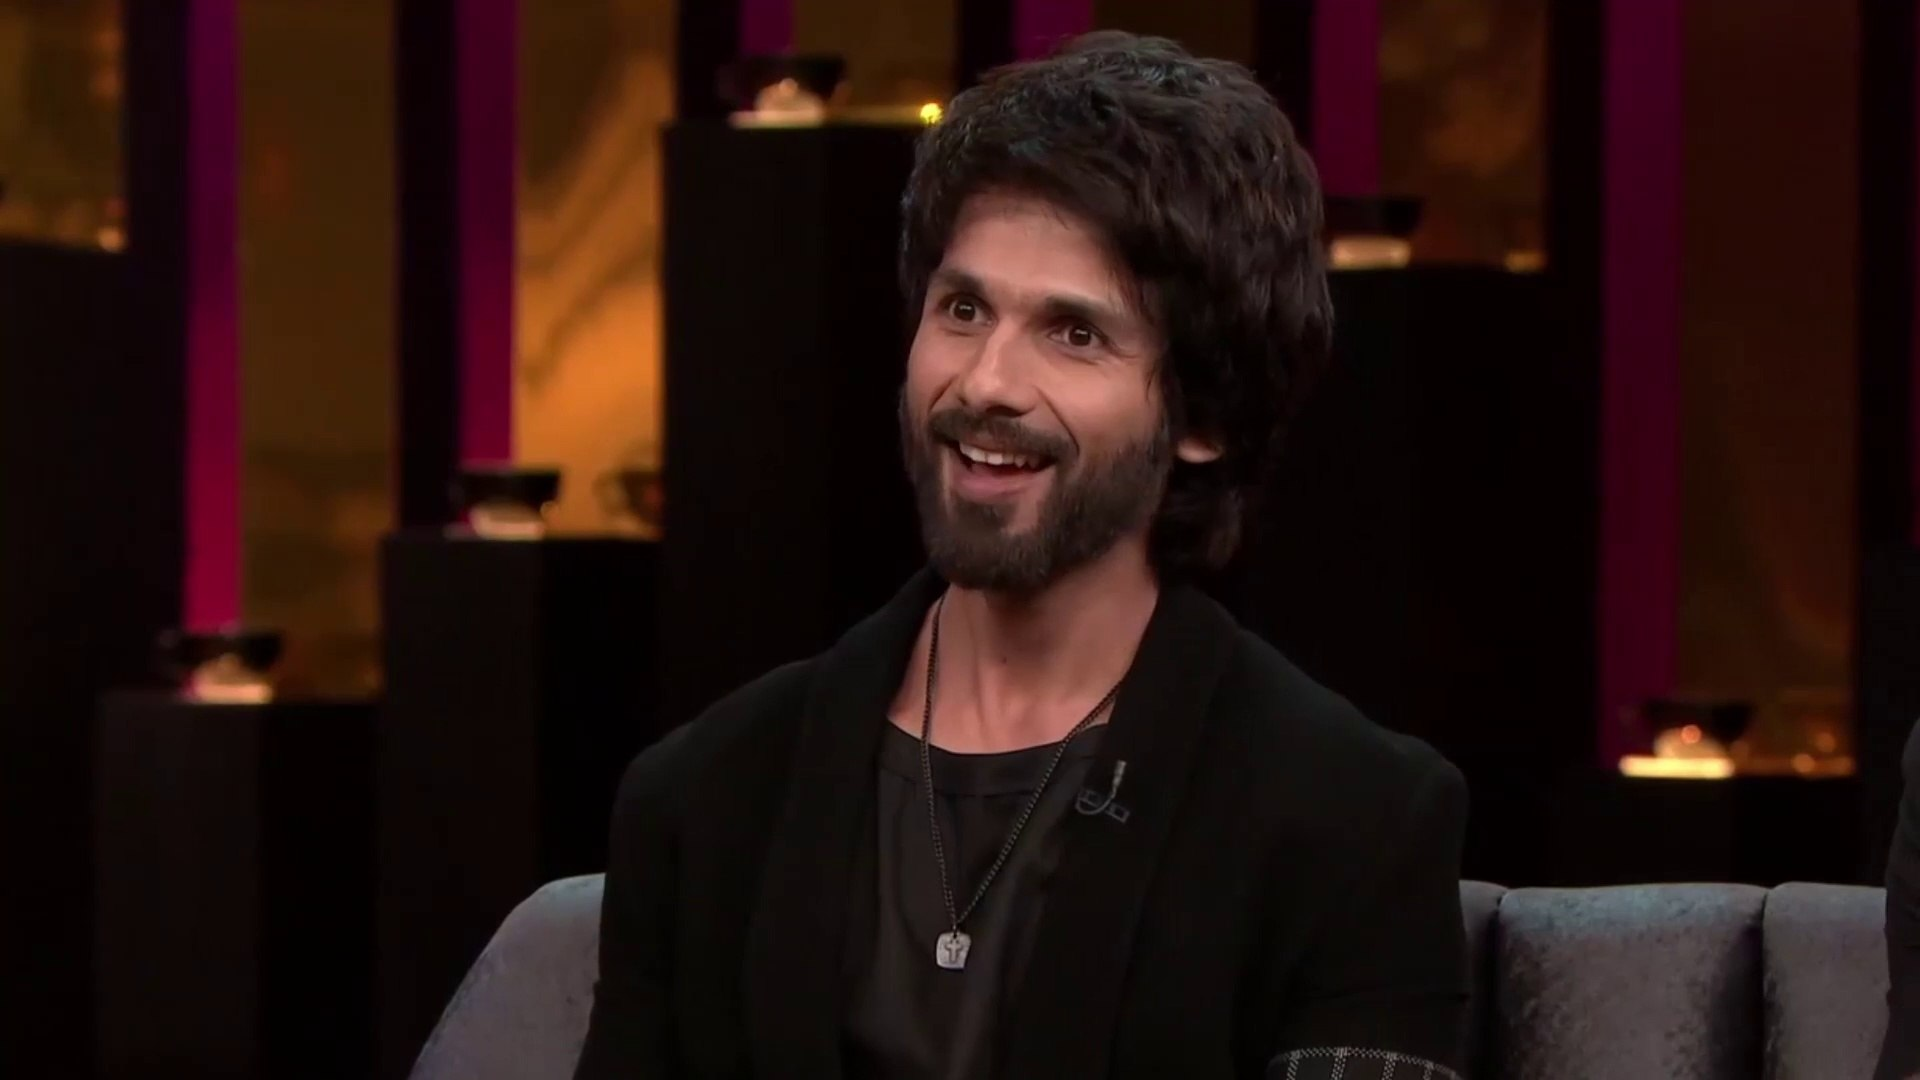 Koffee With Karan - While Shahid prompts a tongue-tied Ishaan to spill the beans about his flings.